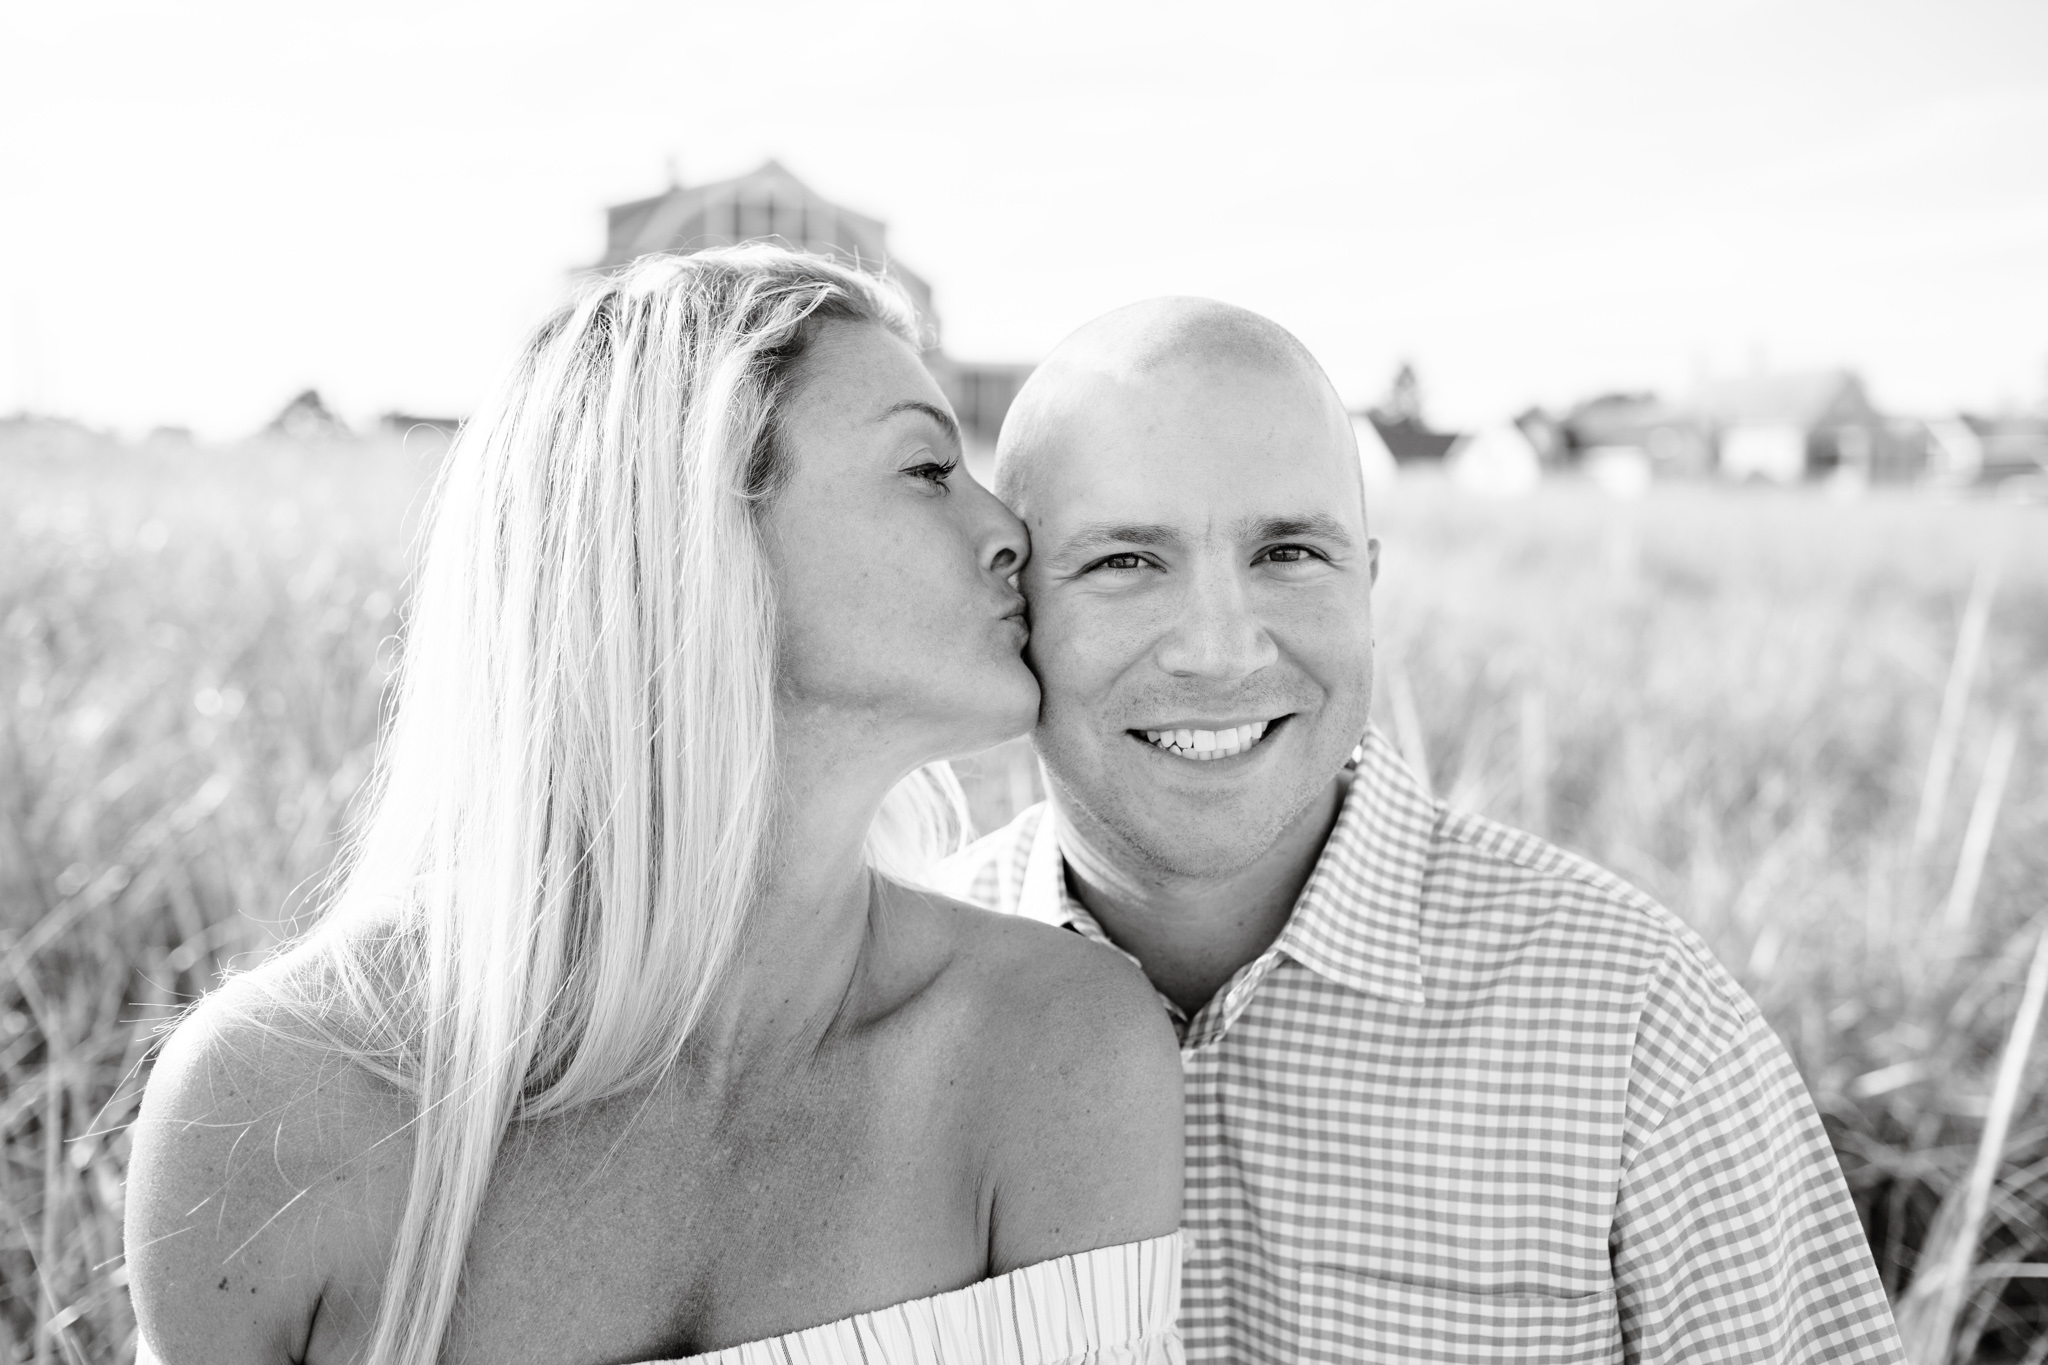 maine-beach-engagement-session-stepheneycollinsphotography-9.jpg